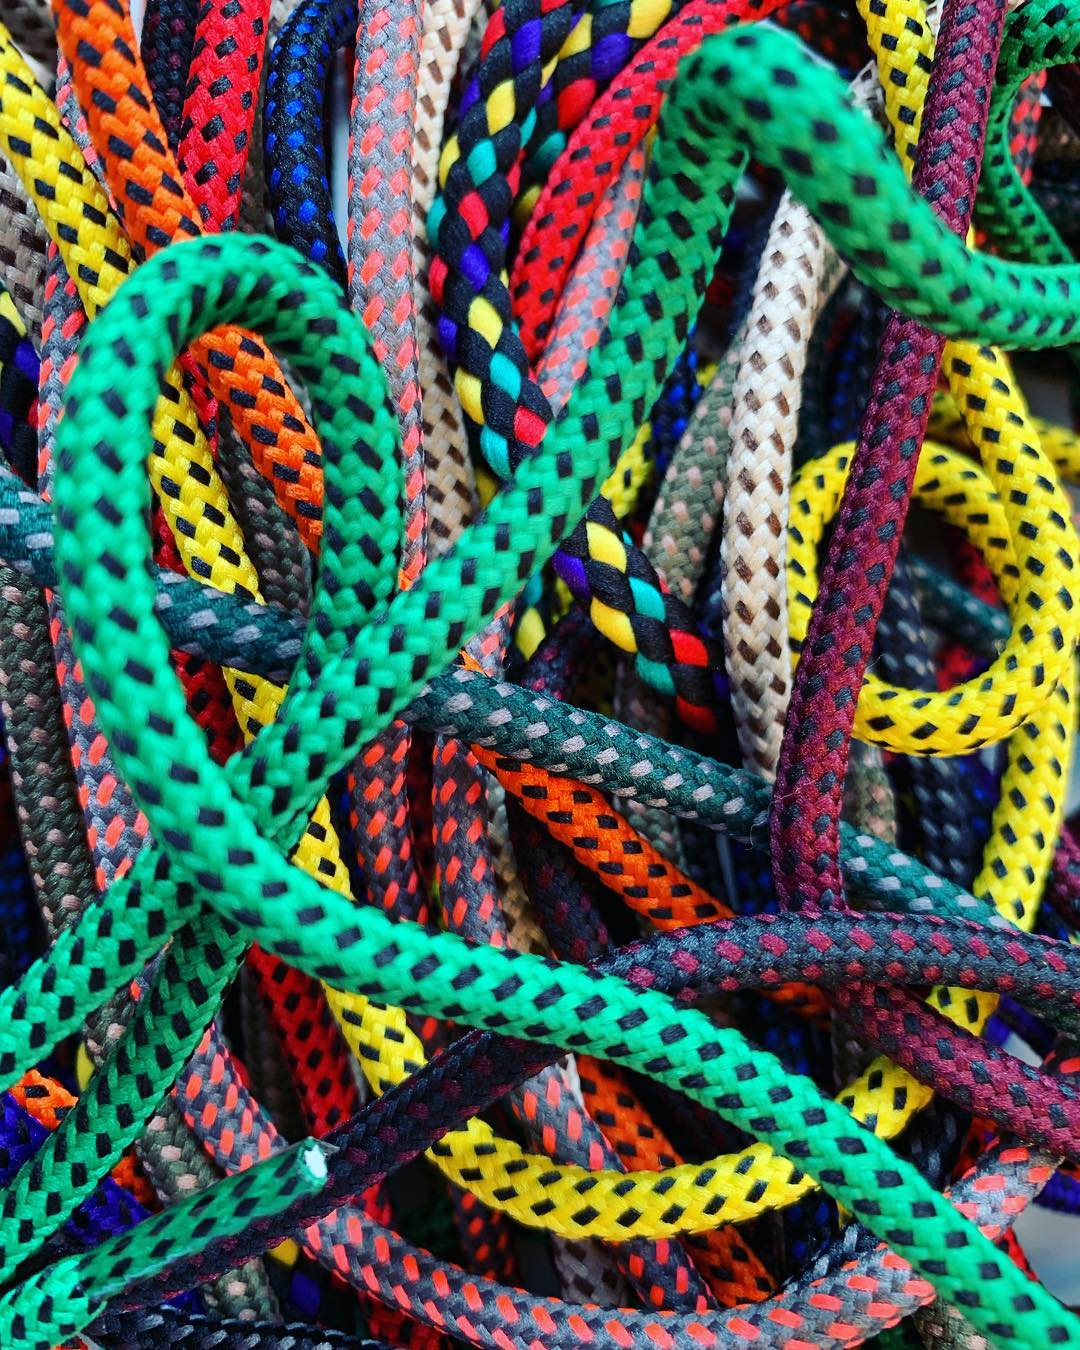 45d455ba5b06b 7 Best Boot Laces in 2019 【Buying Guide and Reviews】